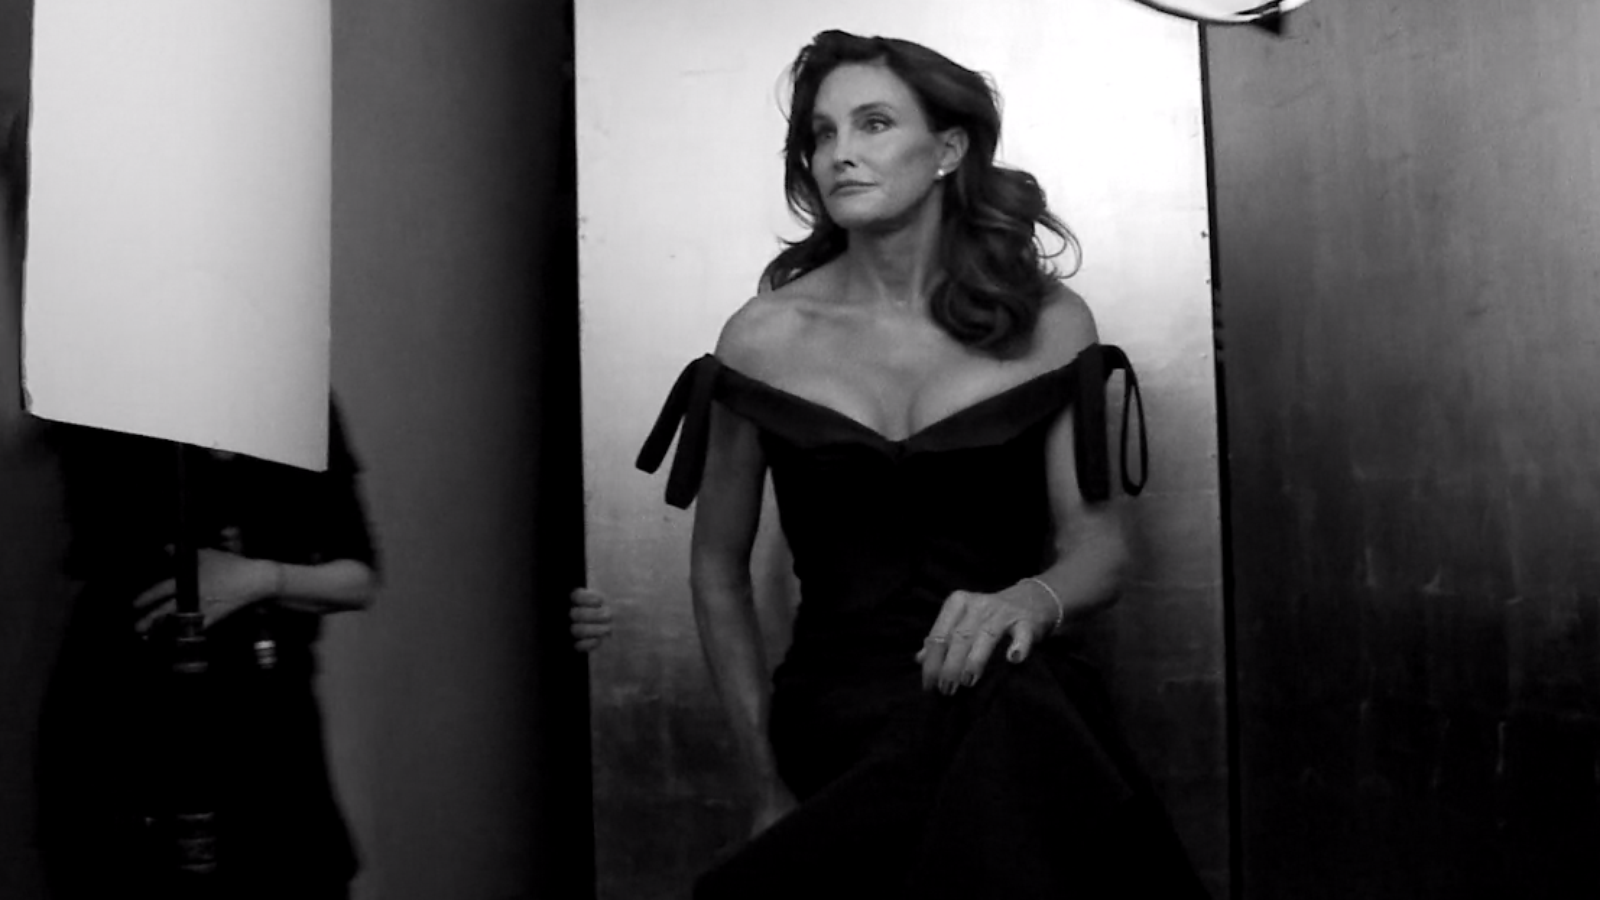 Caitlyn Jenner just broke the record for fastest to reach 1 million Twitter followers